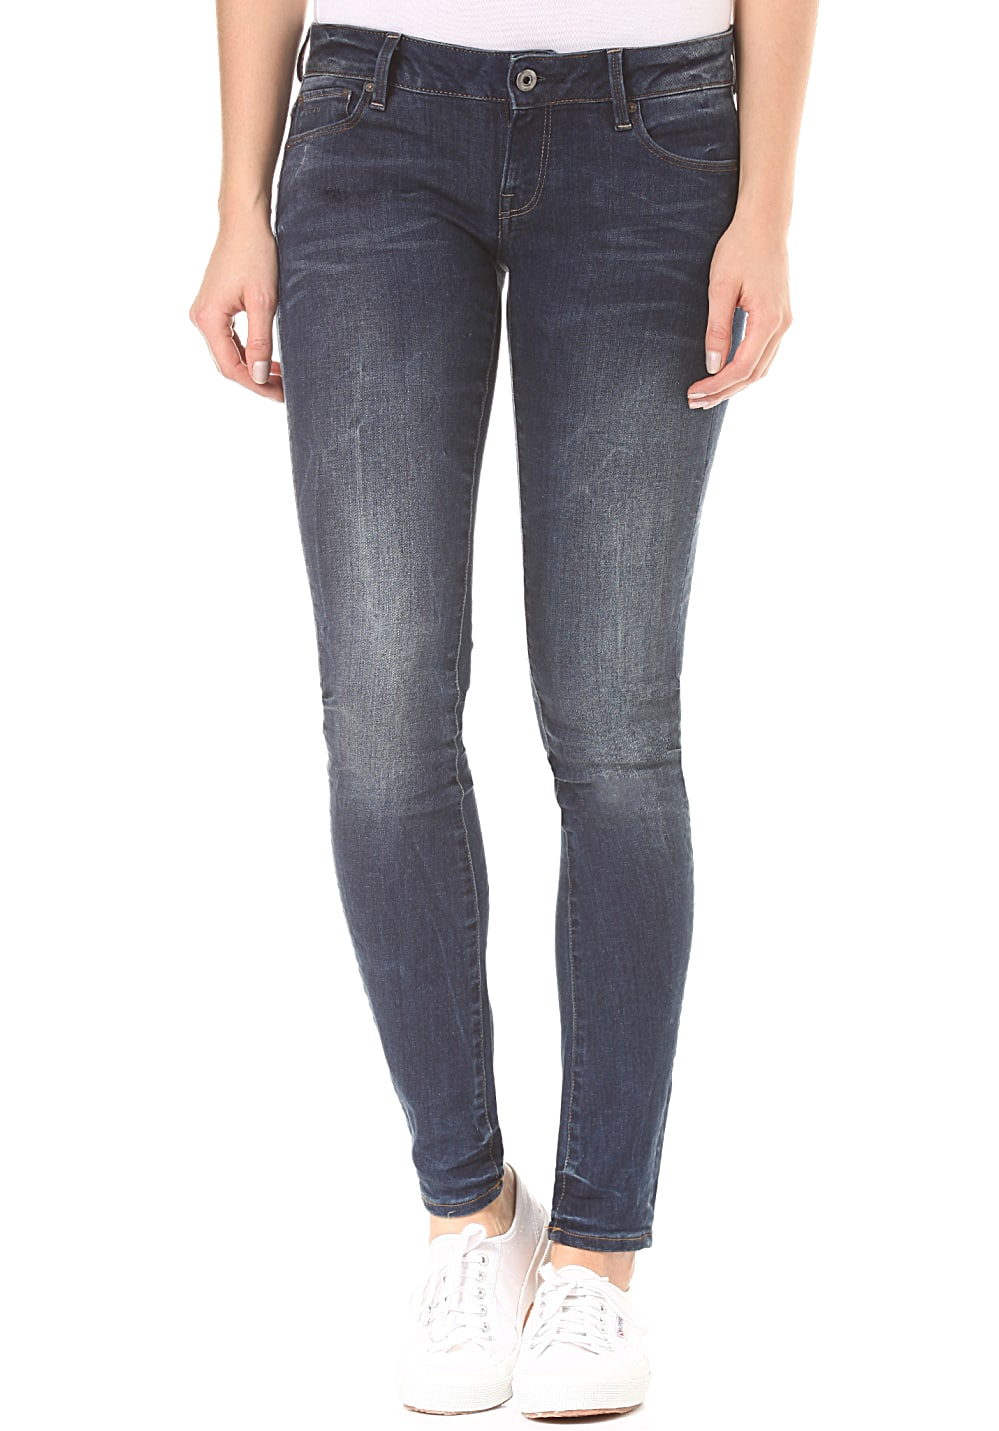 G-STAR RAW 3301 Low Skinny - Jeans für Damen - Blau